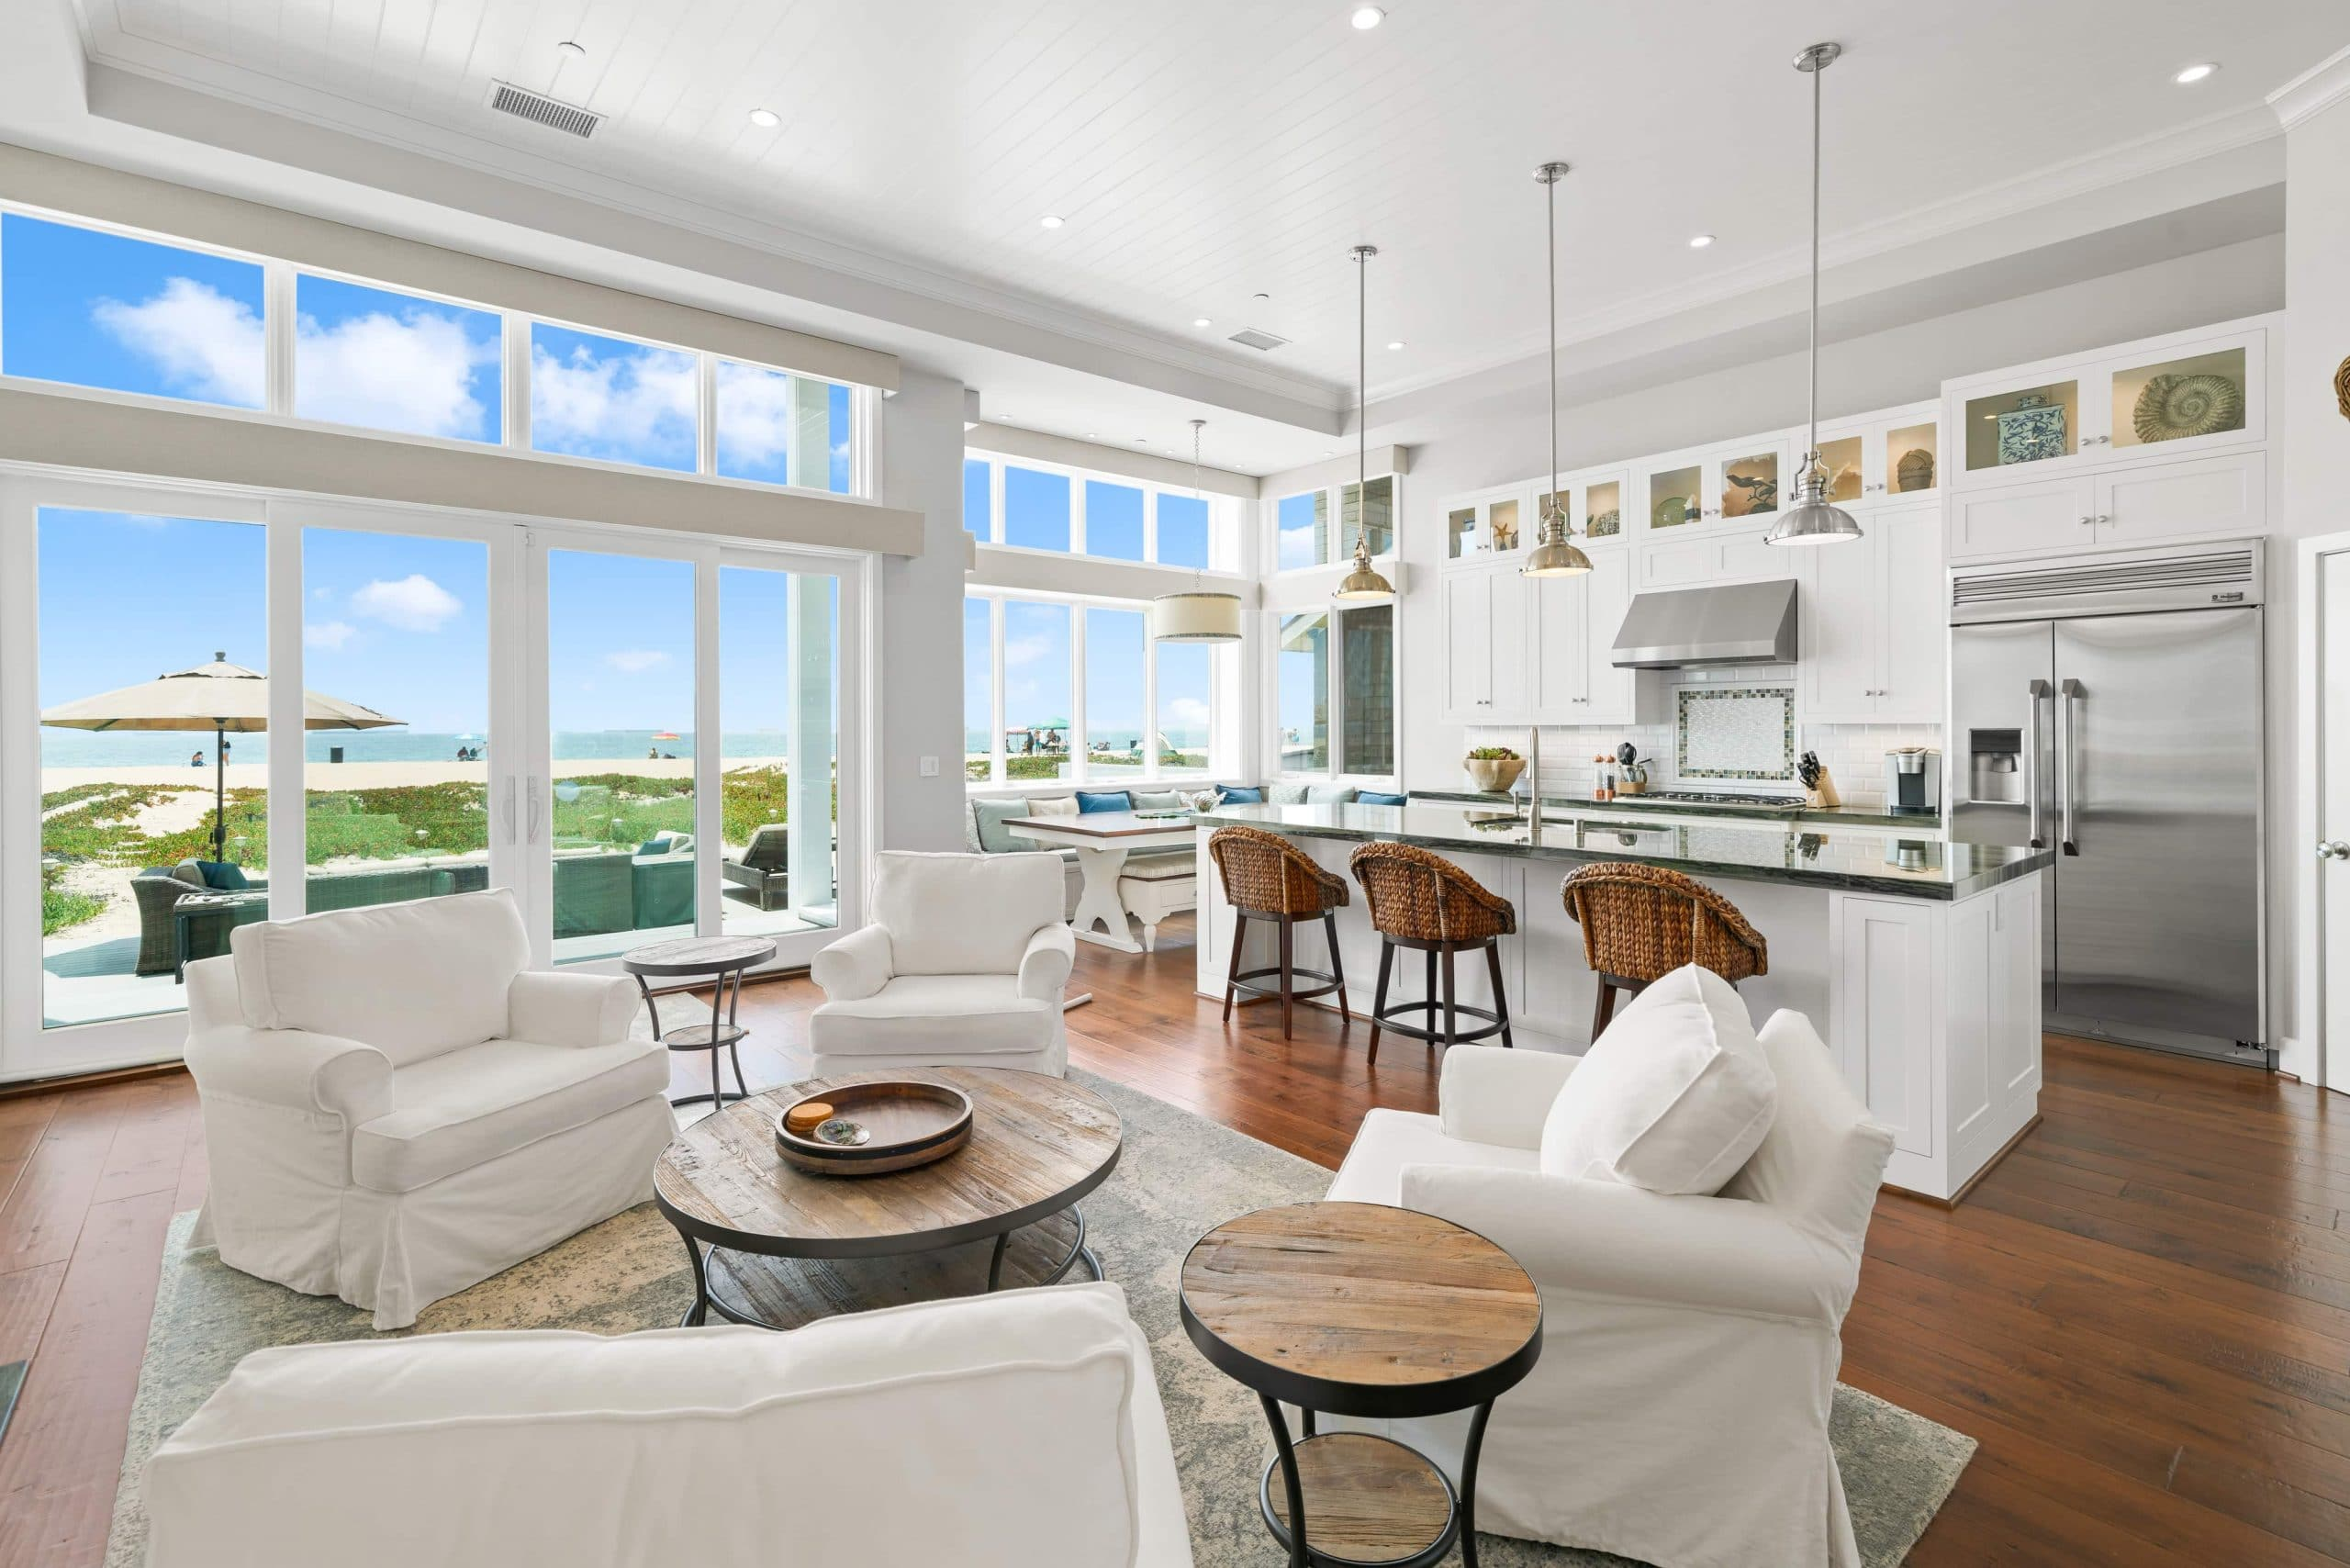 Light And Bright Beach House With Open Concept Kitchen And Living Room.